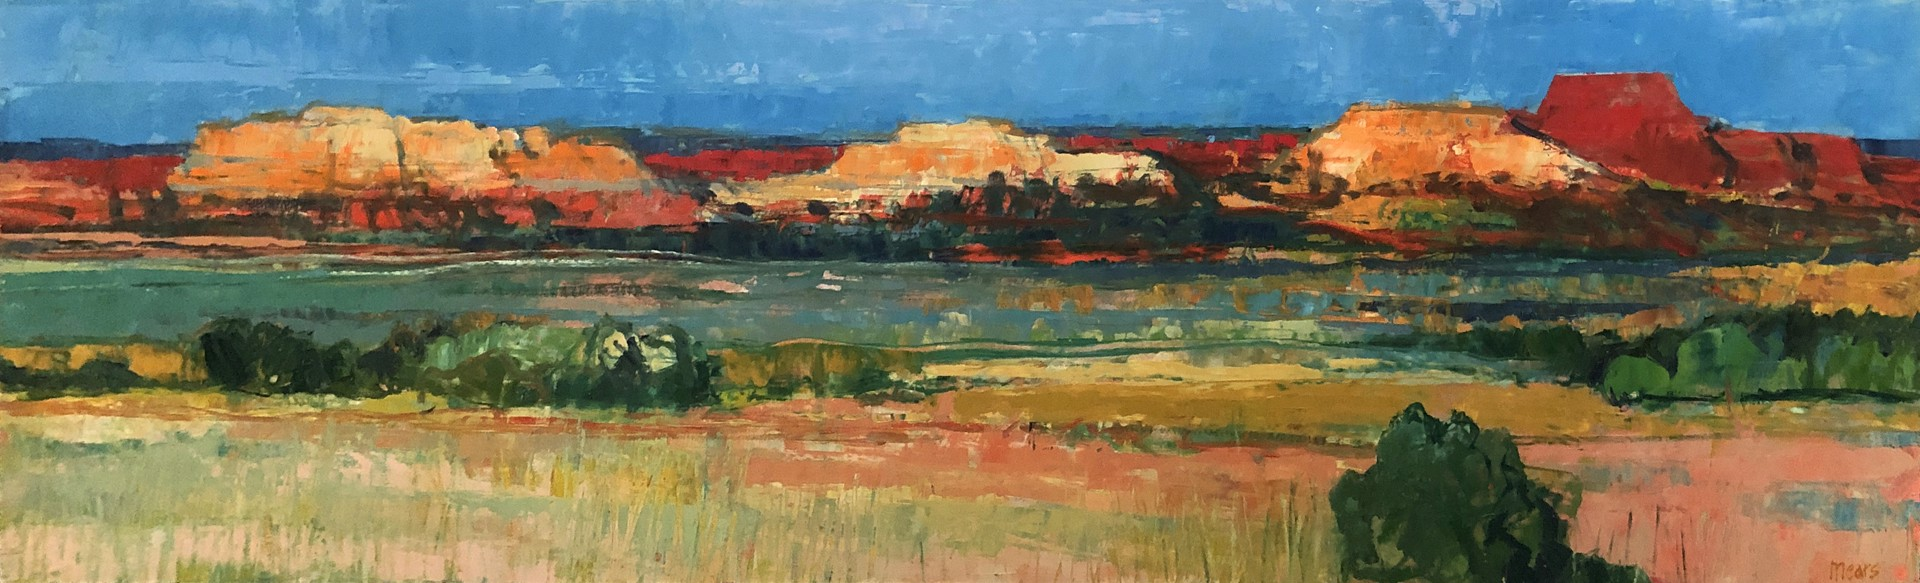 Red Mesa by Herb Mears